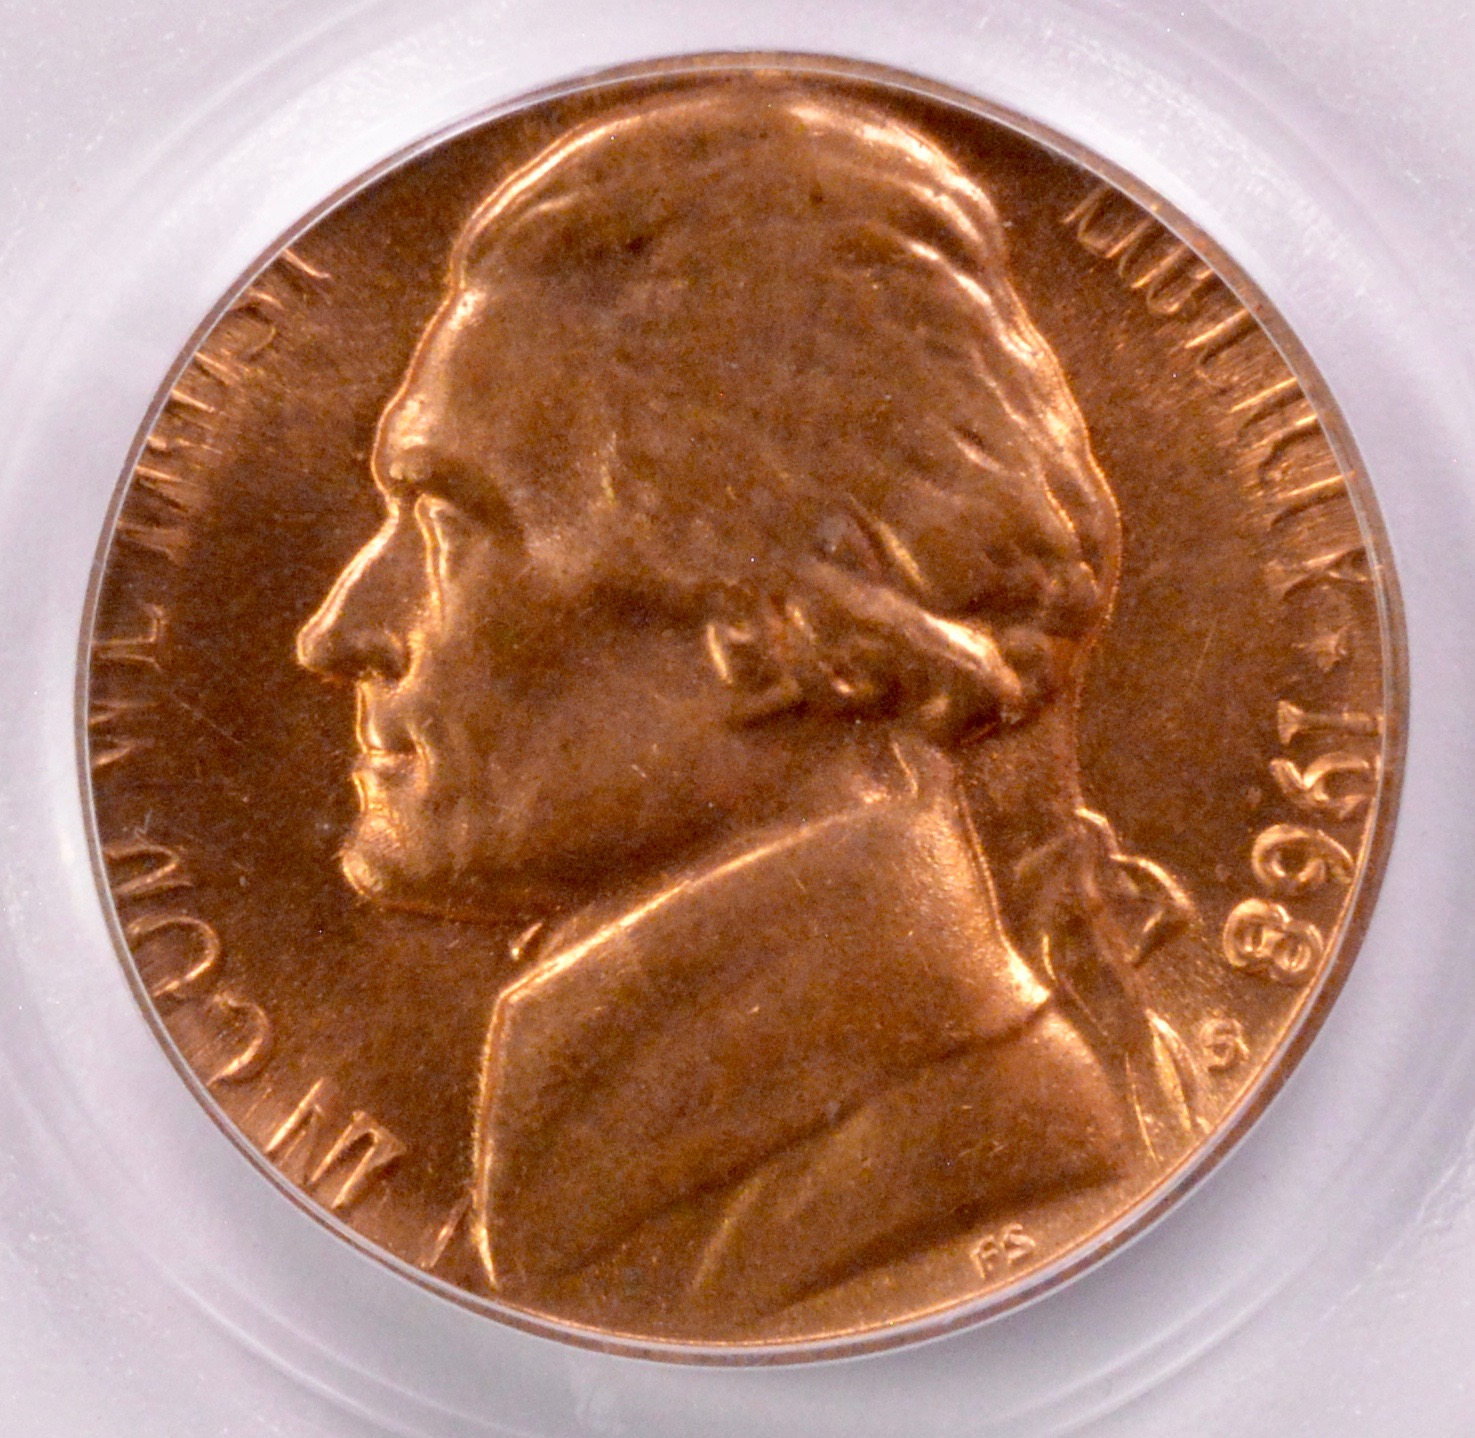 PCGS 5c 1968-S Jefferson Nickel on Cent Planchet MS-65 Red